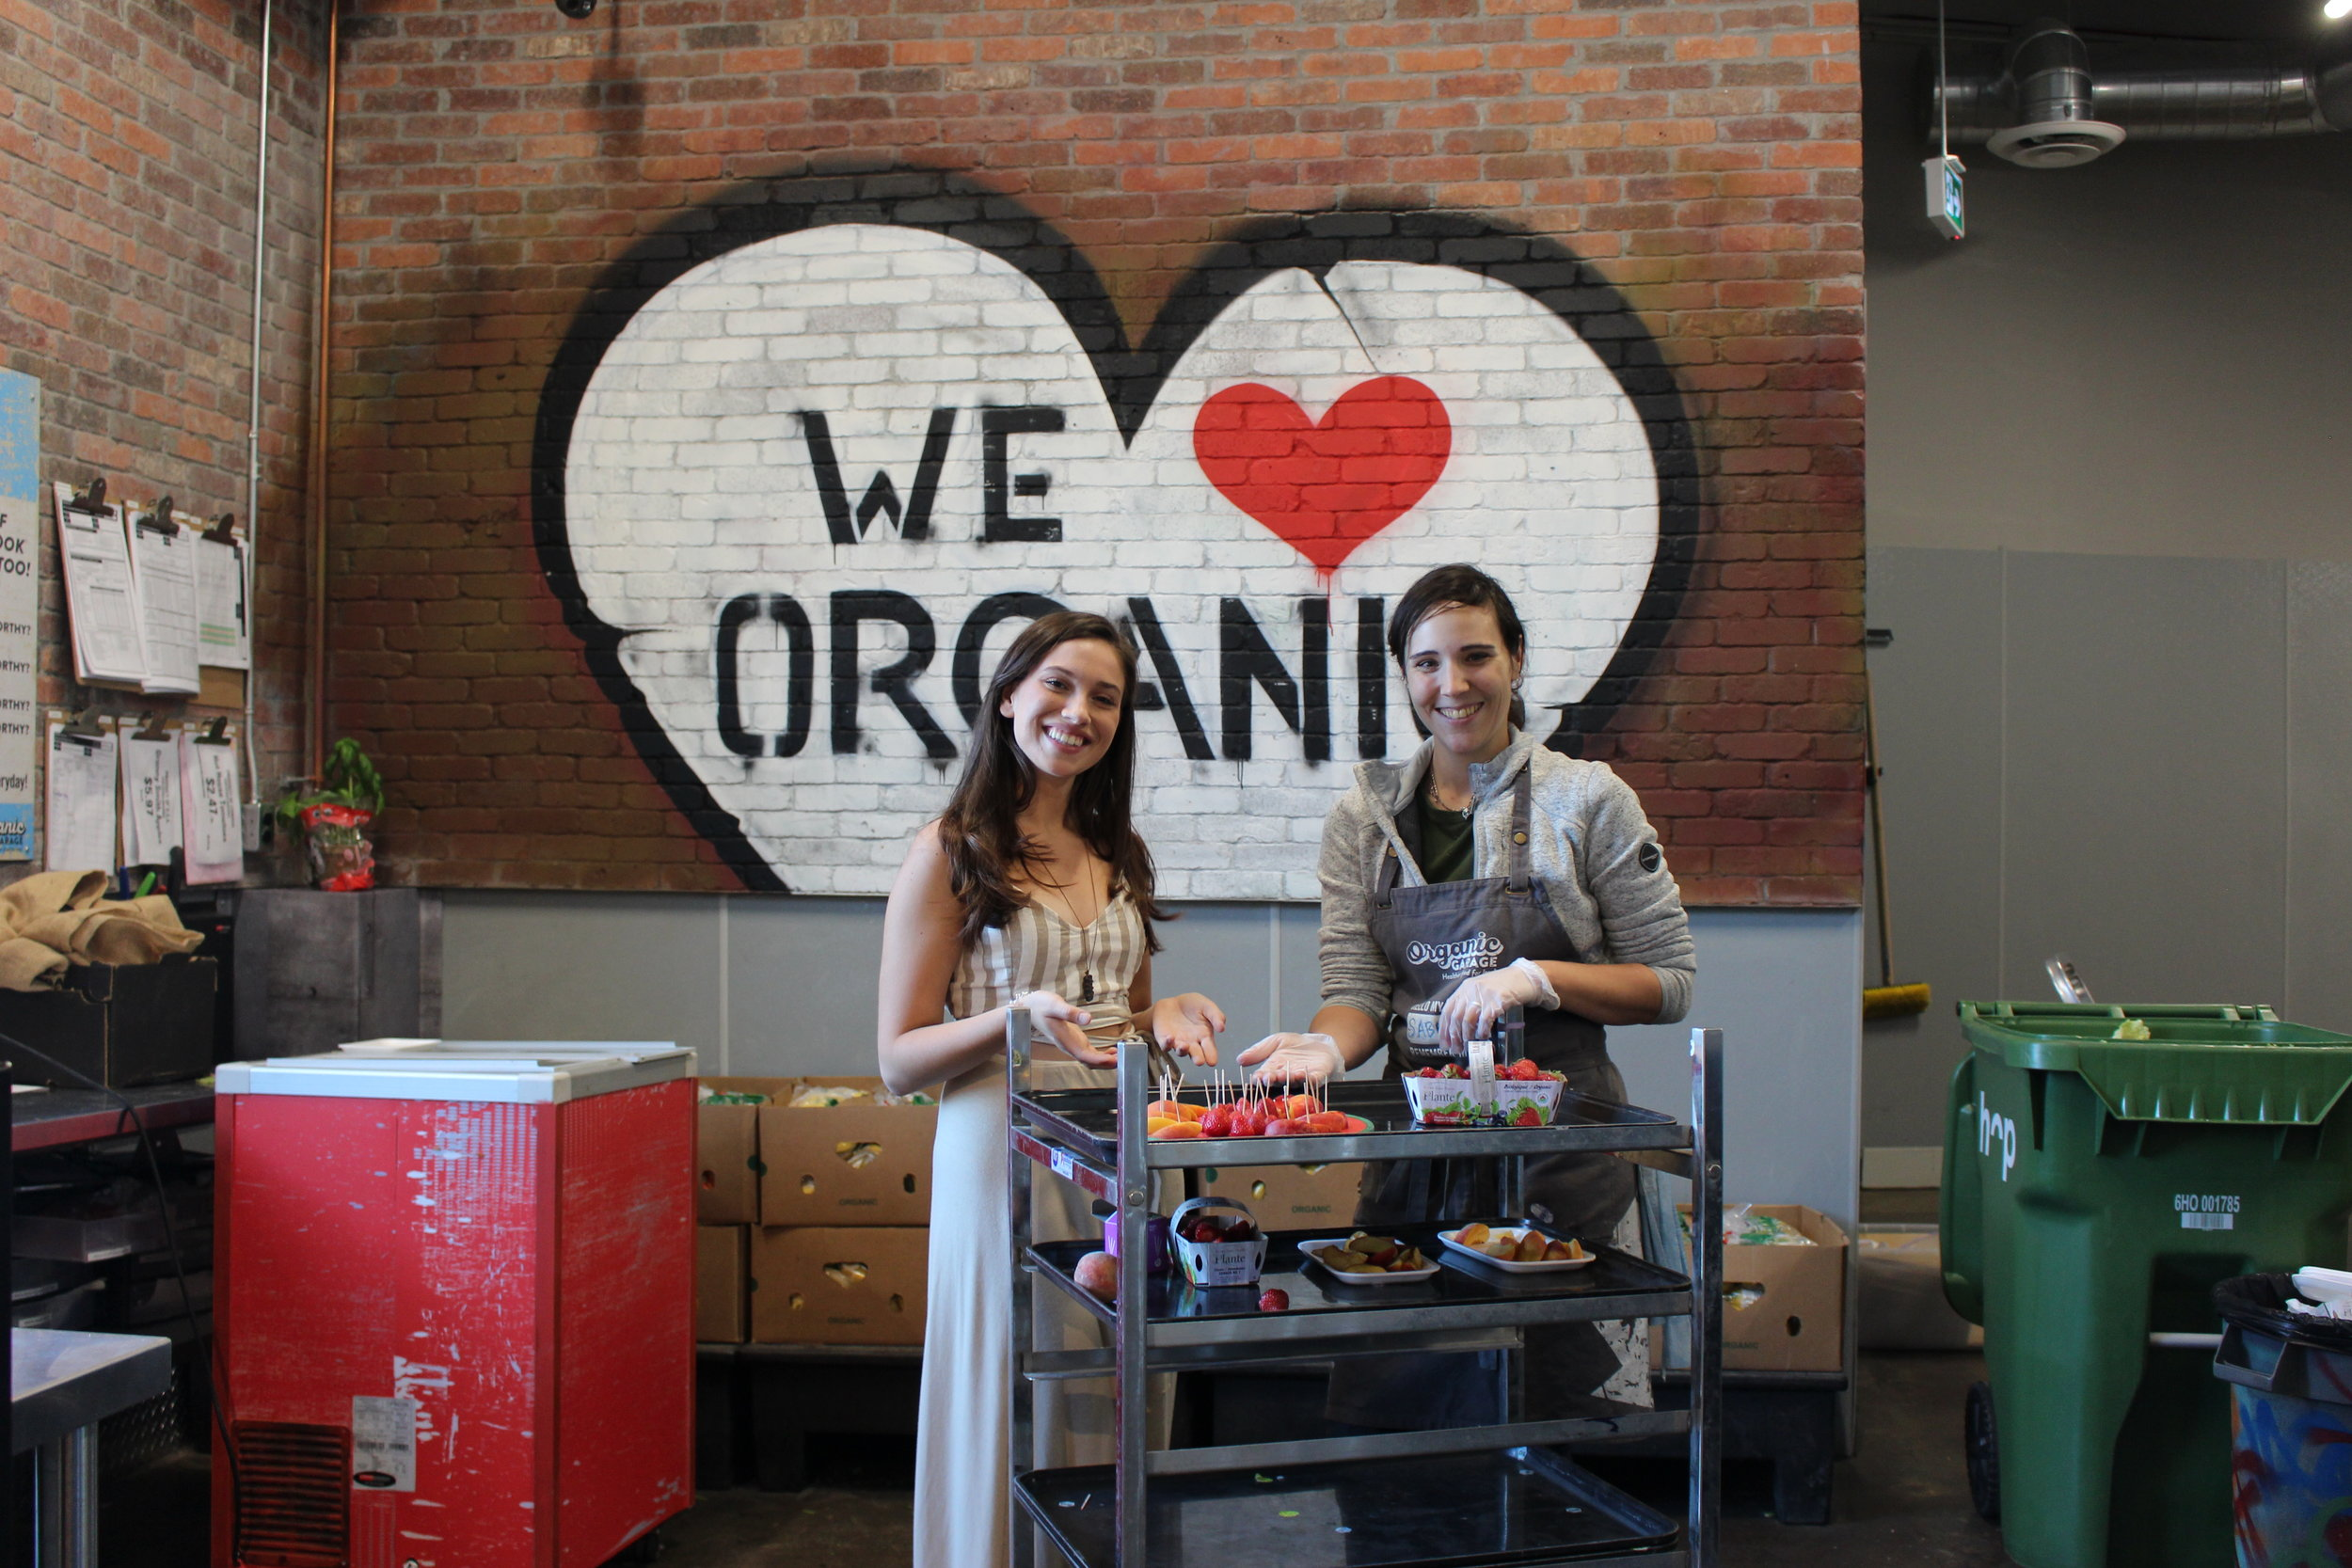 Organic Garage sells the best quality organic and all natural products, including 100% certified organic produce and many vegan options at everyday affordable prices, so customers can shop for Healthier Food For Less!  Photo by    Rachel Parent.